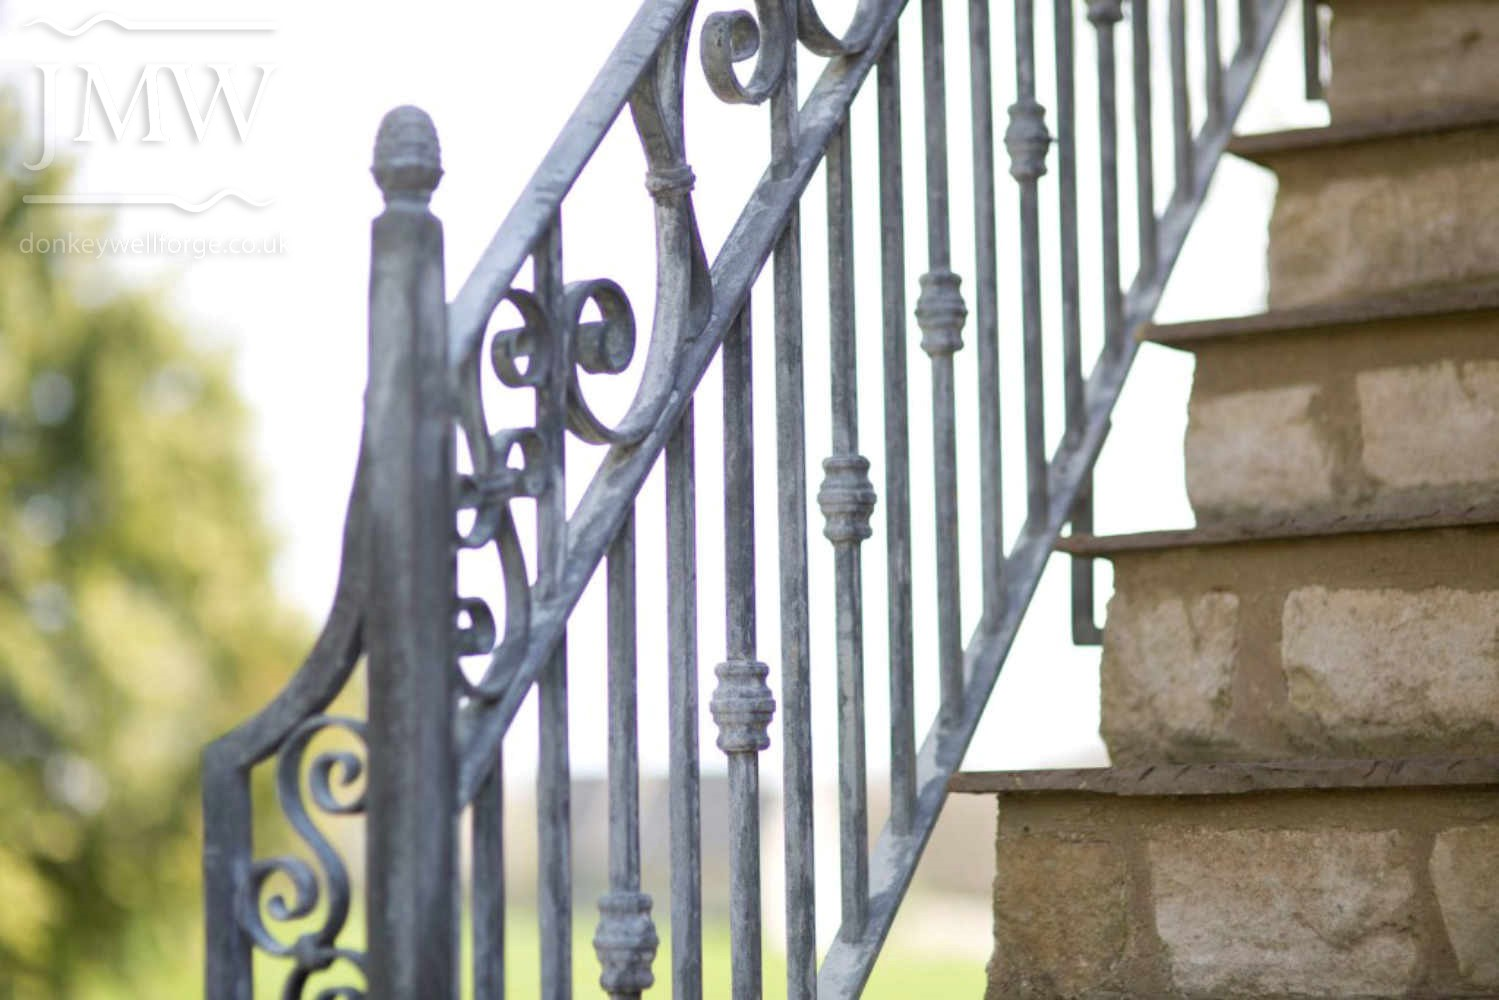 quenington-side-stair-rail-bespoke-ornate-iron-blacksmith-donkeywell-forge